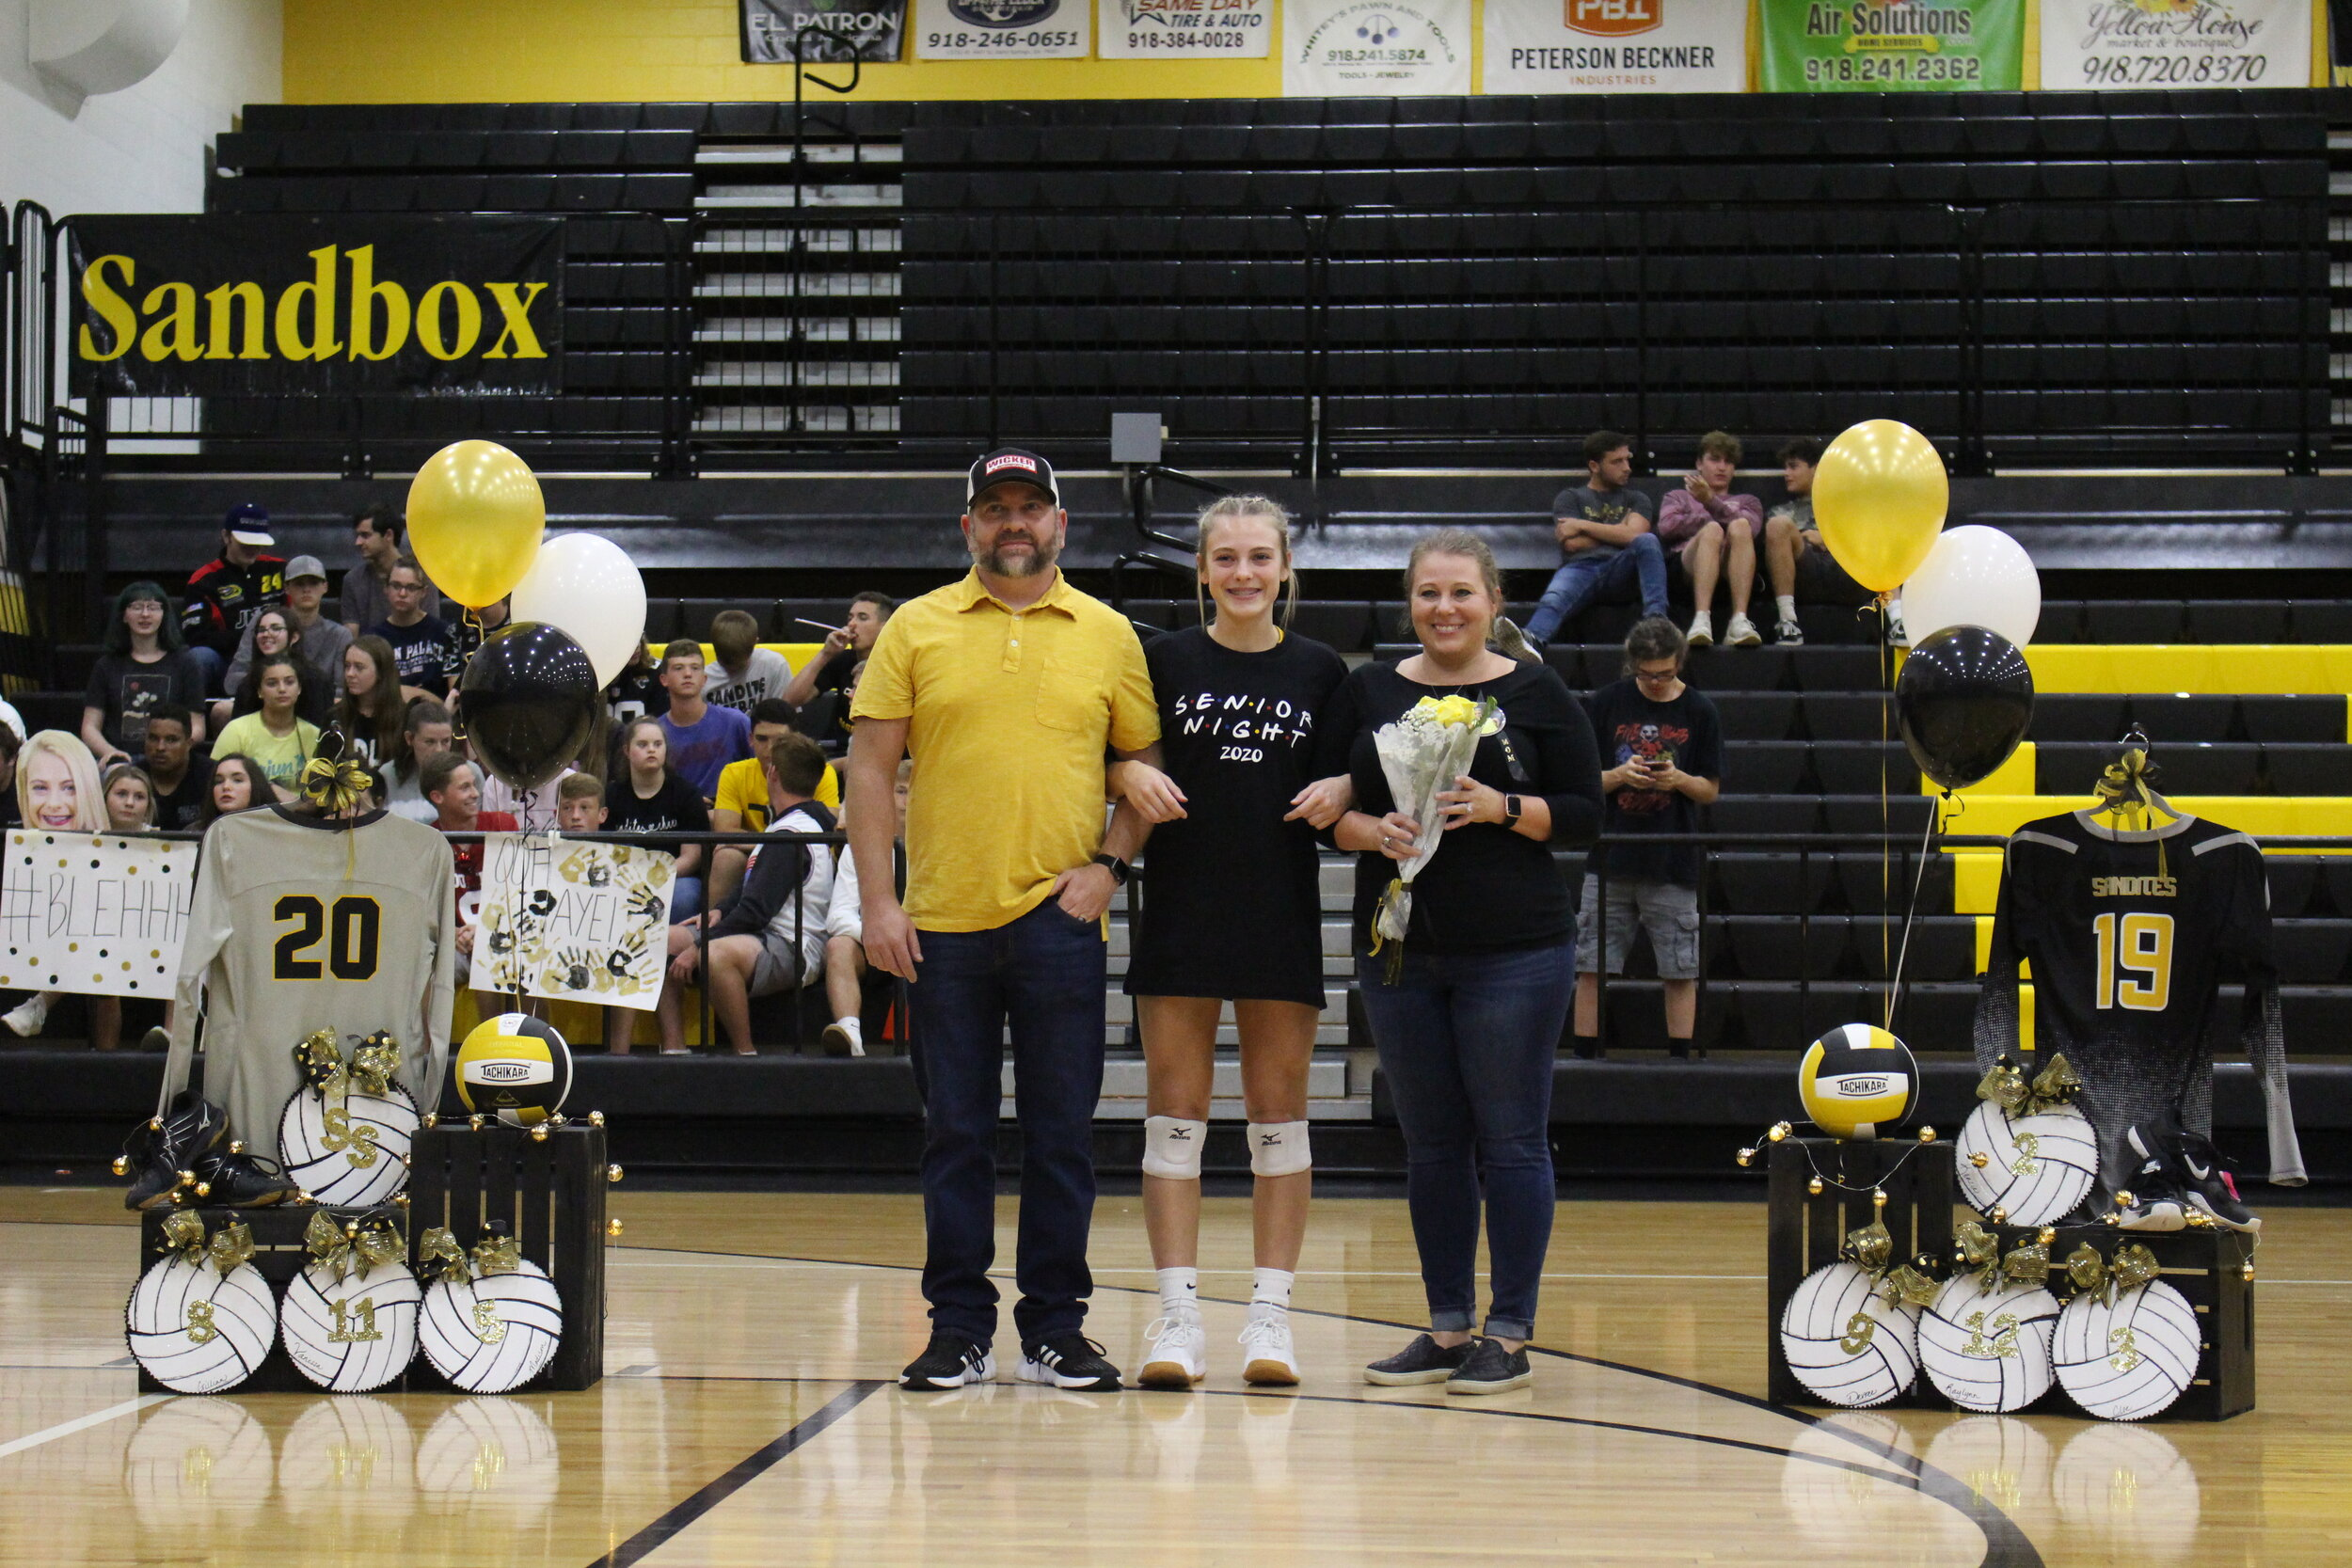 """Gillian Wicker (DS), escorted by parents Steve and Stacy Wicker. She has played Sandite Volleyball for 6 years and plans to continue her education at Oklahoma State University, where she will major in Communications Sciences and Disorders.  Wicker's favorite volleyball memory was when she and Coach Green came up with """"Nicole"""" in Branson her freshman year. She left the following message for her teammates. """"Always be yourself and work hard."""""""